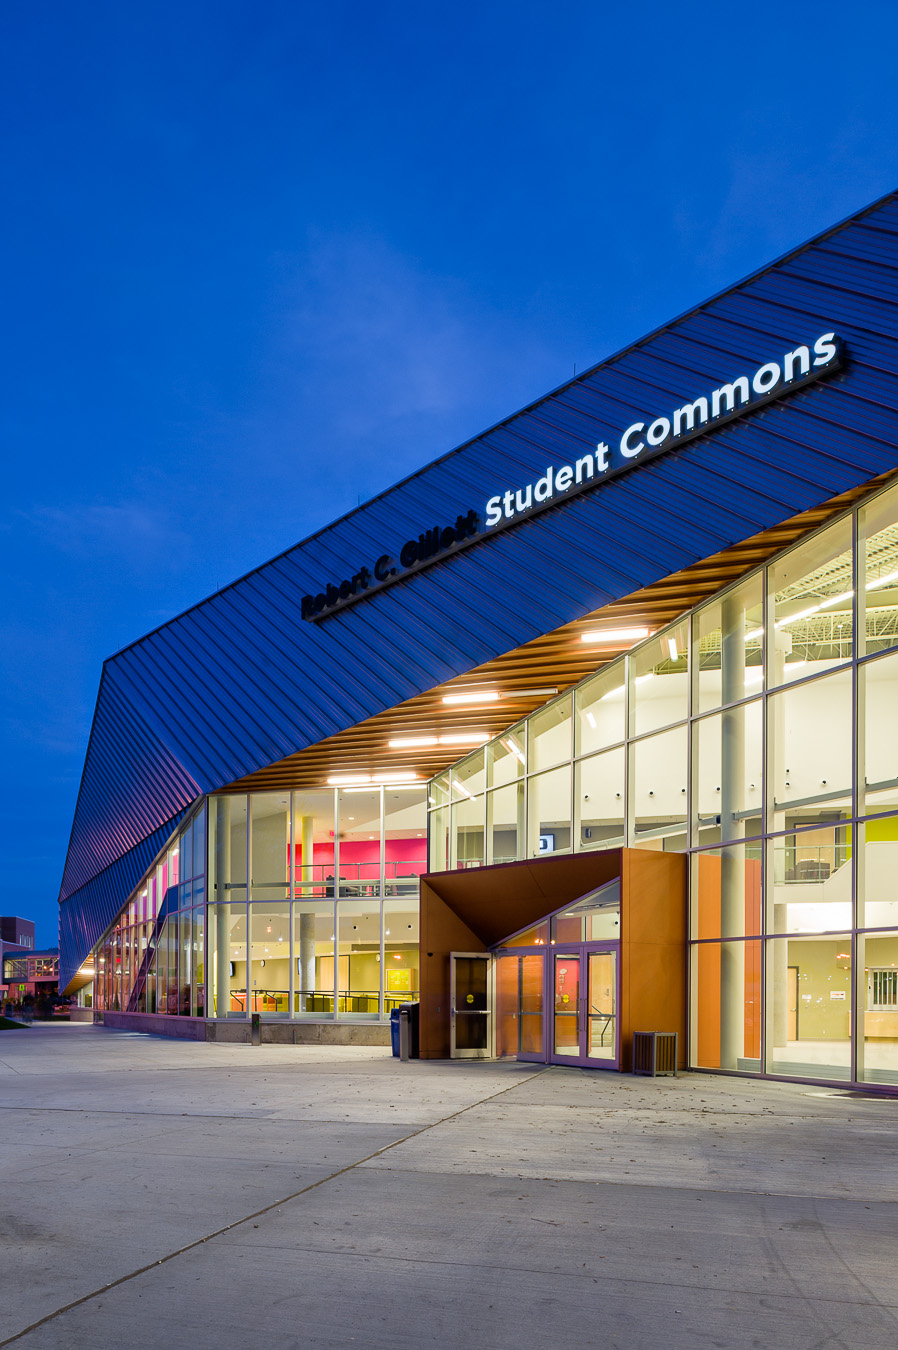 21-Teeple architects algonquin student commons toronto architectural photography canada.jpg